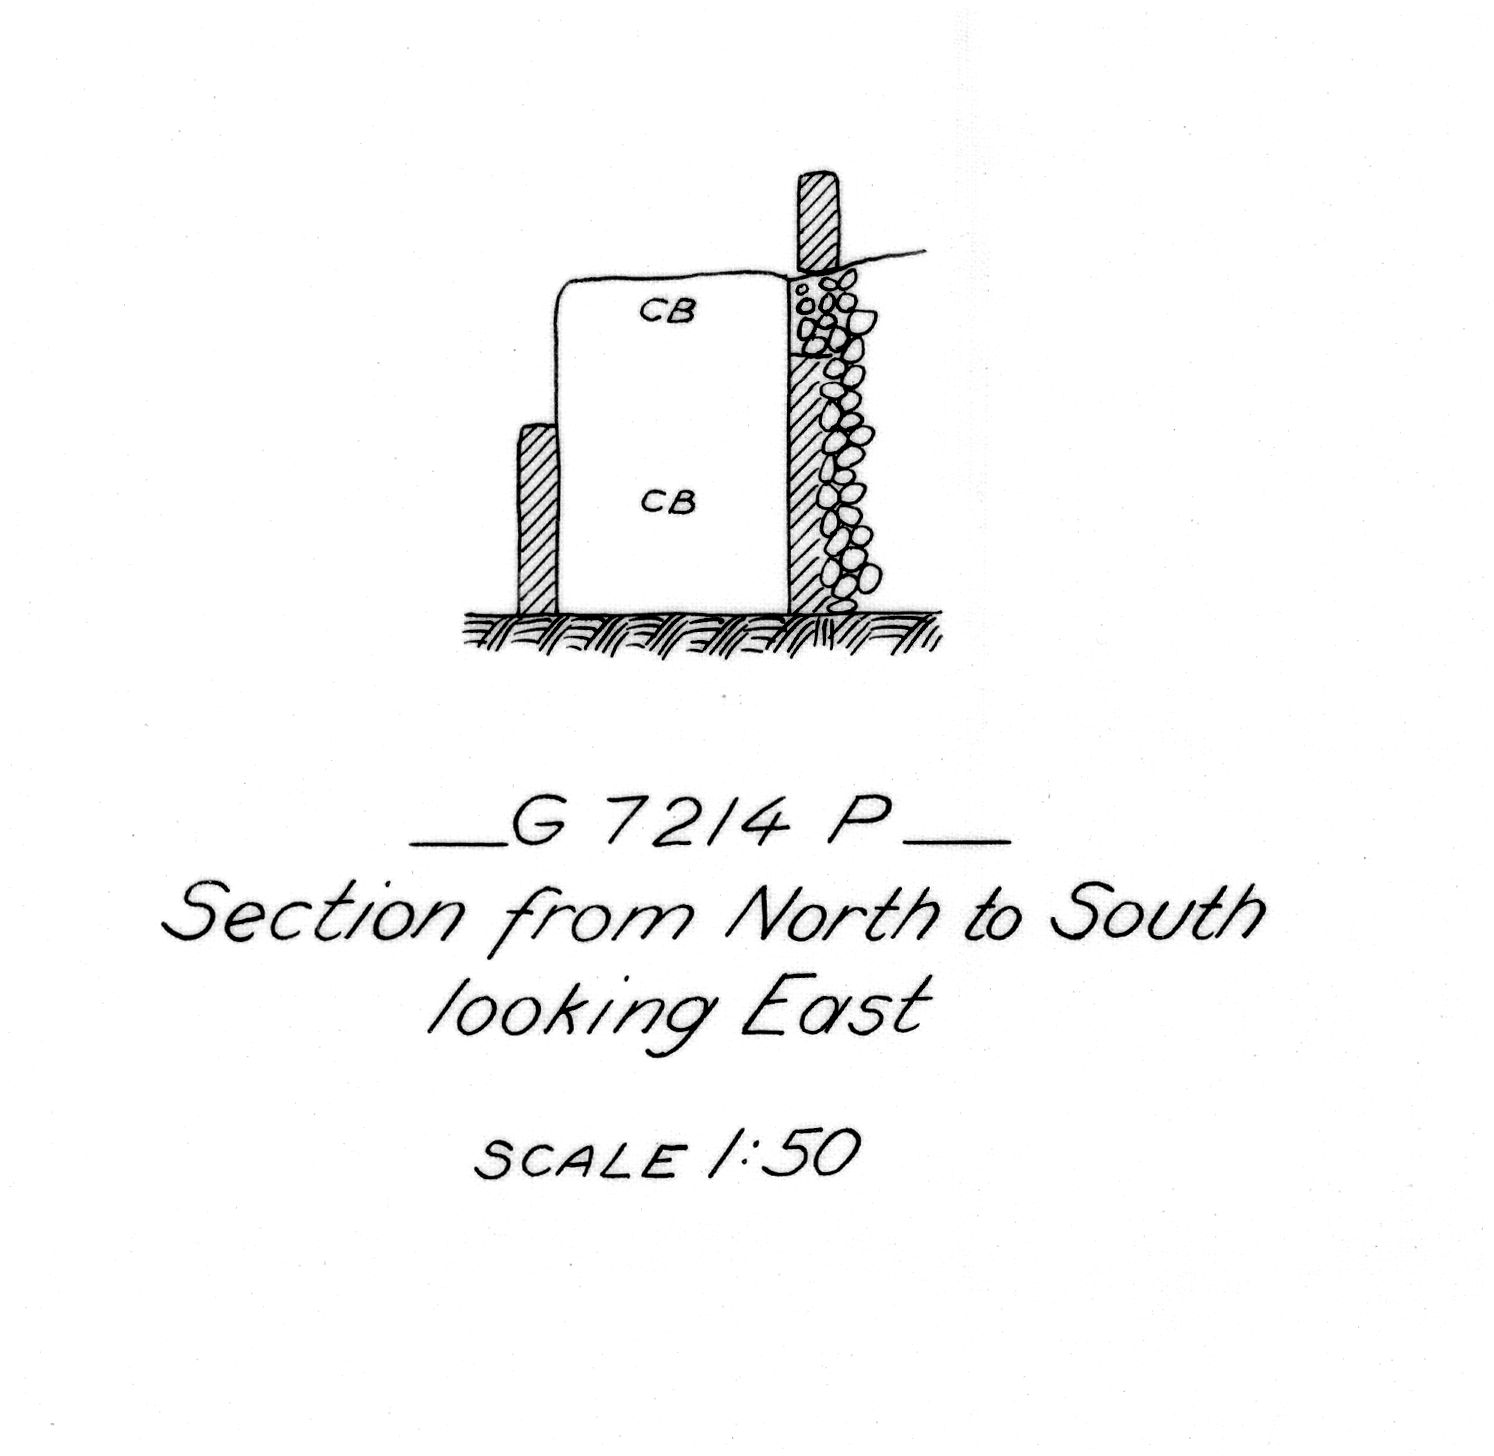 Maps and plans: G 7214, Shaft P